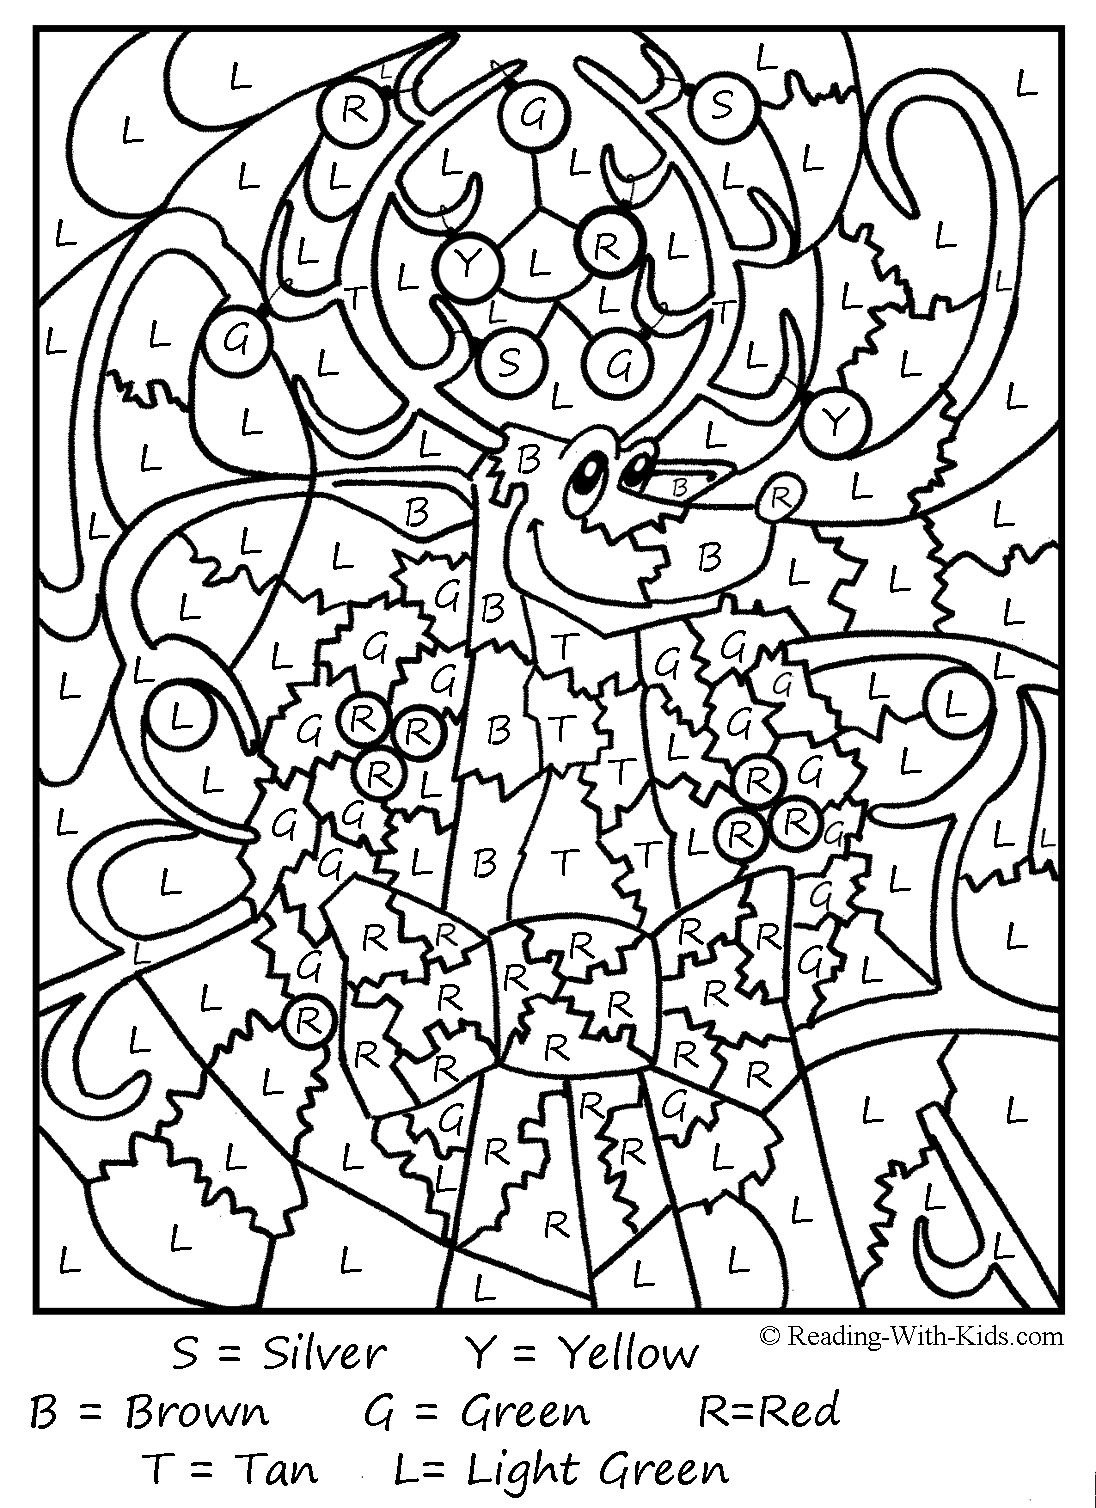 Hundreds Of Free Printable Xmas Coloring Pages And Xmas Activity - Free Printable Christmas Color By Number Coloring Pages